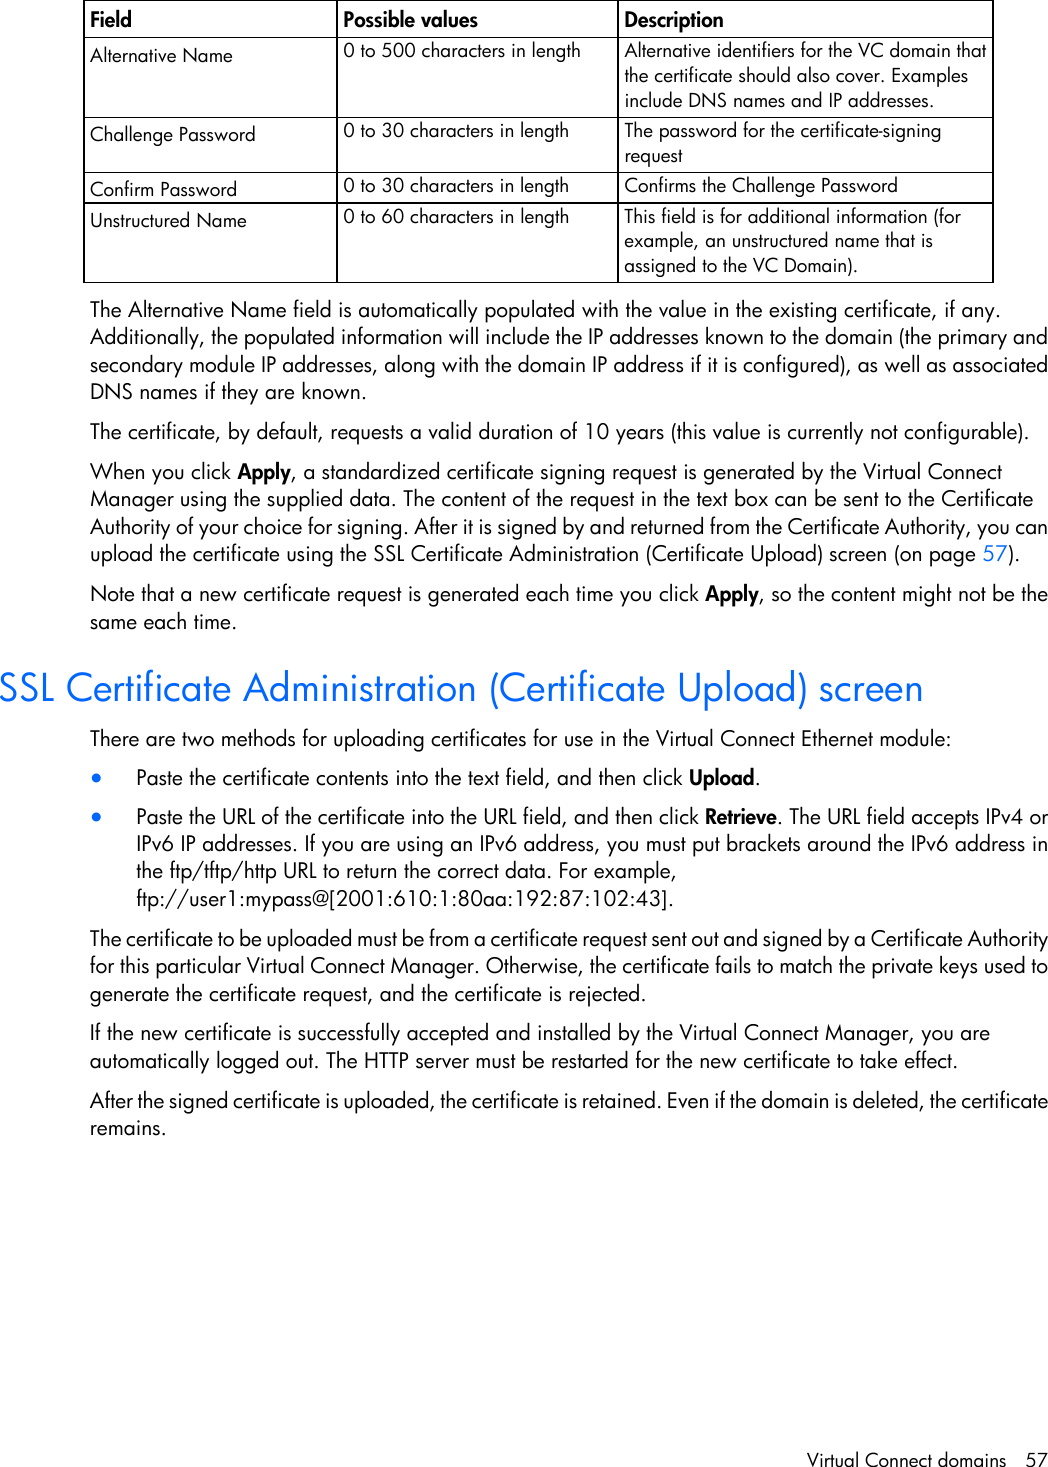 Hp Virtual Connect Firmware Users Manual For C Class BladeSystem